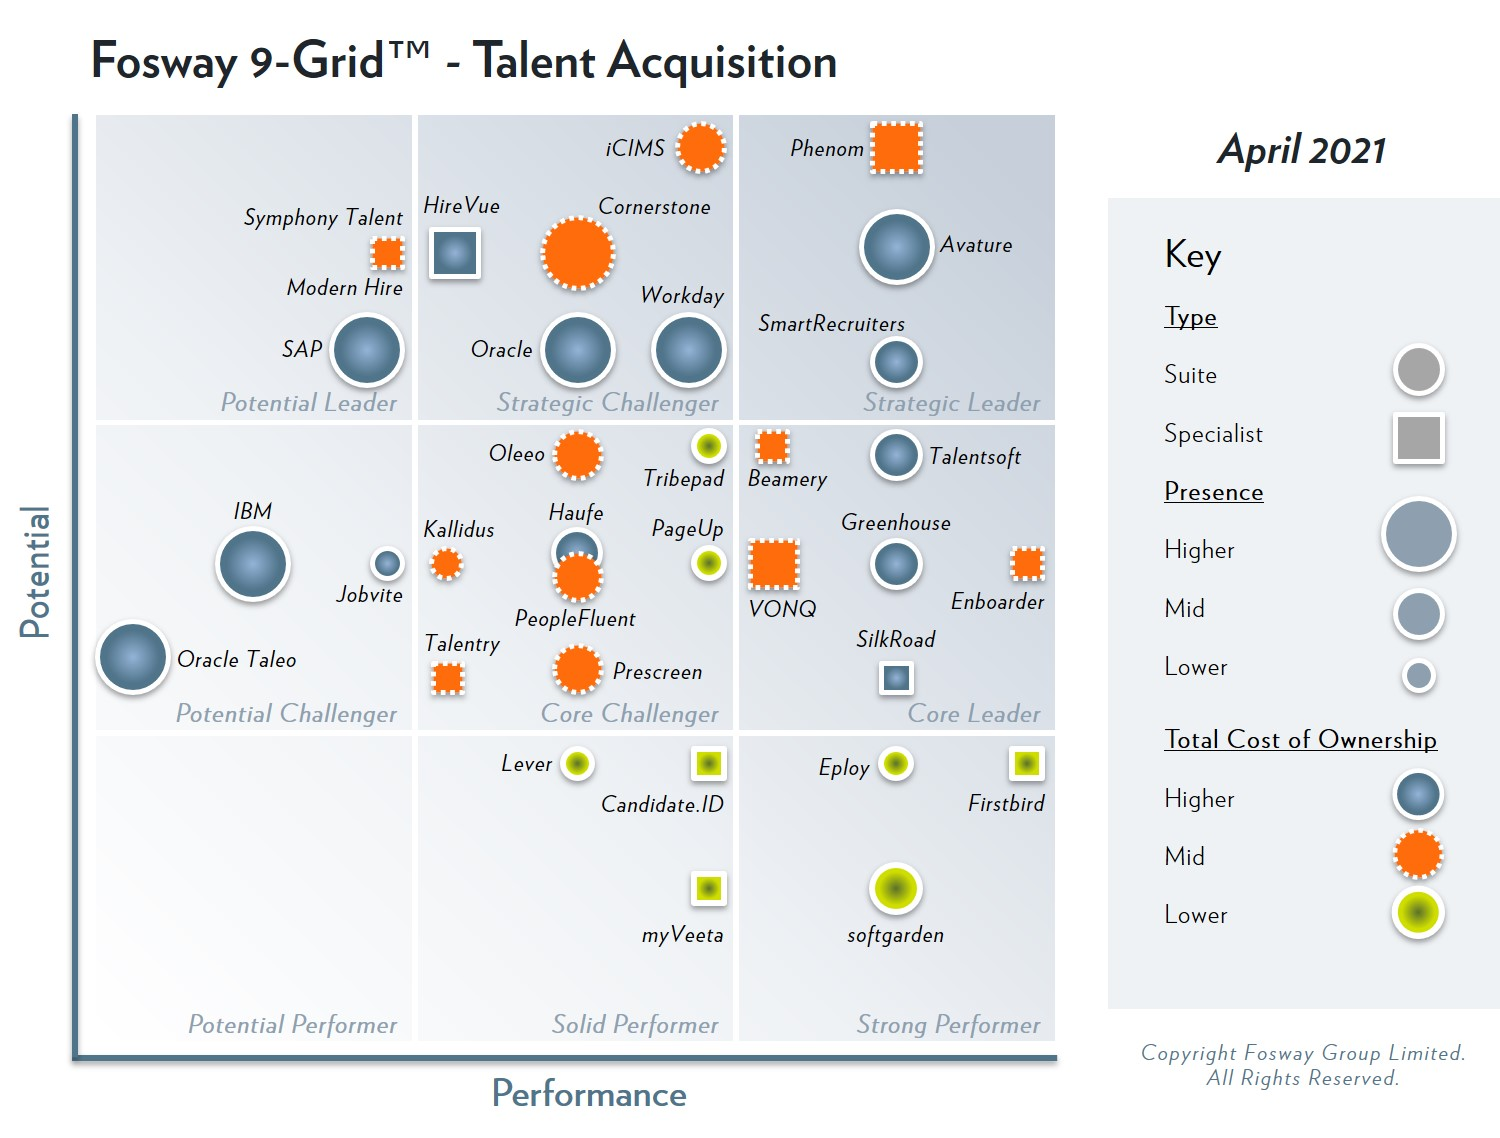 Fosway 9-Grid for Talent Acquisition